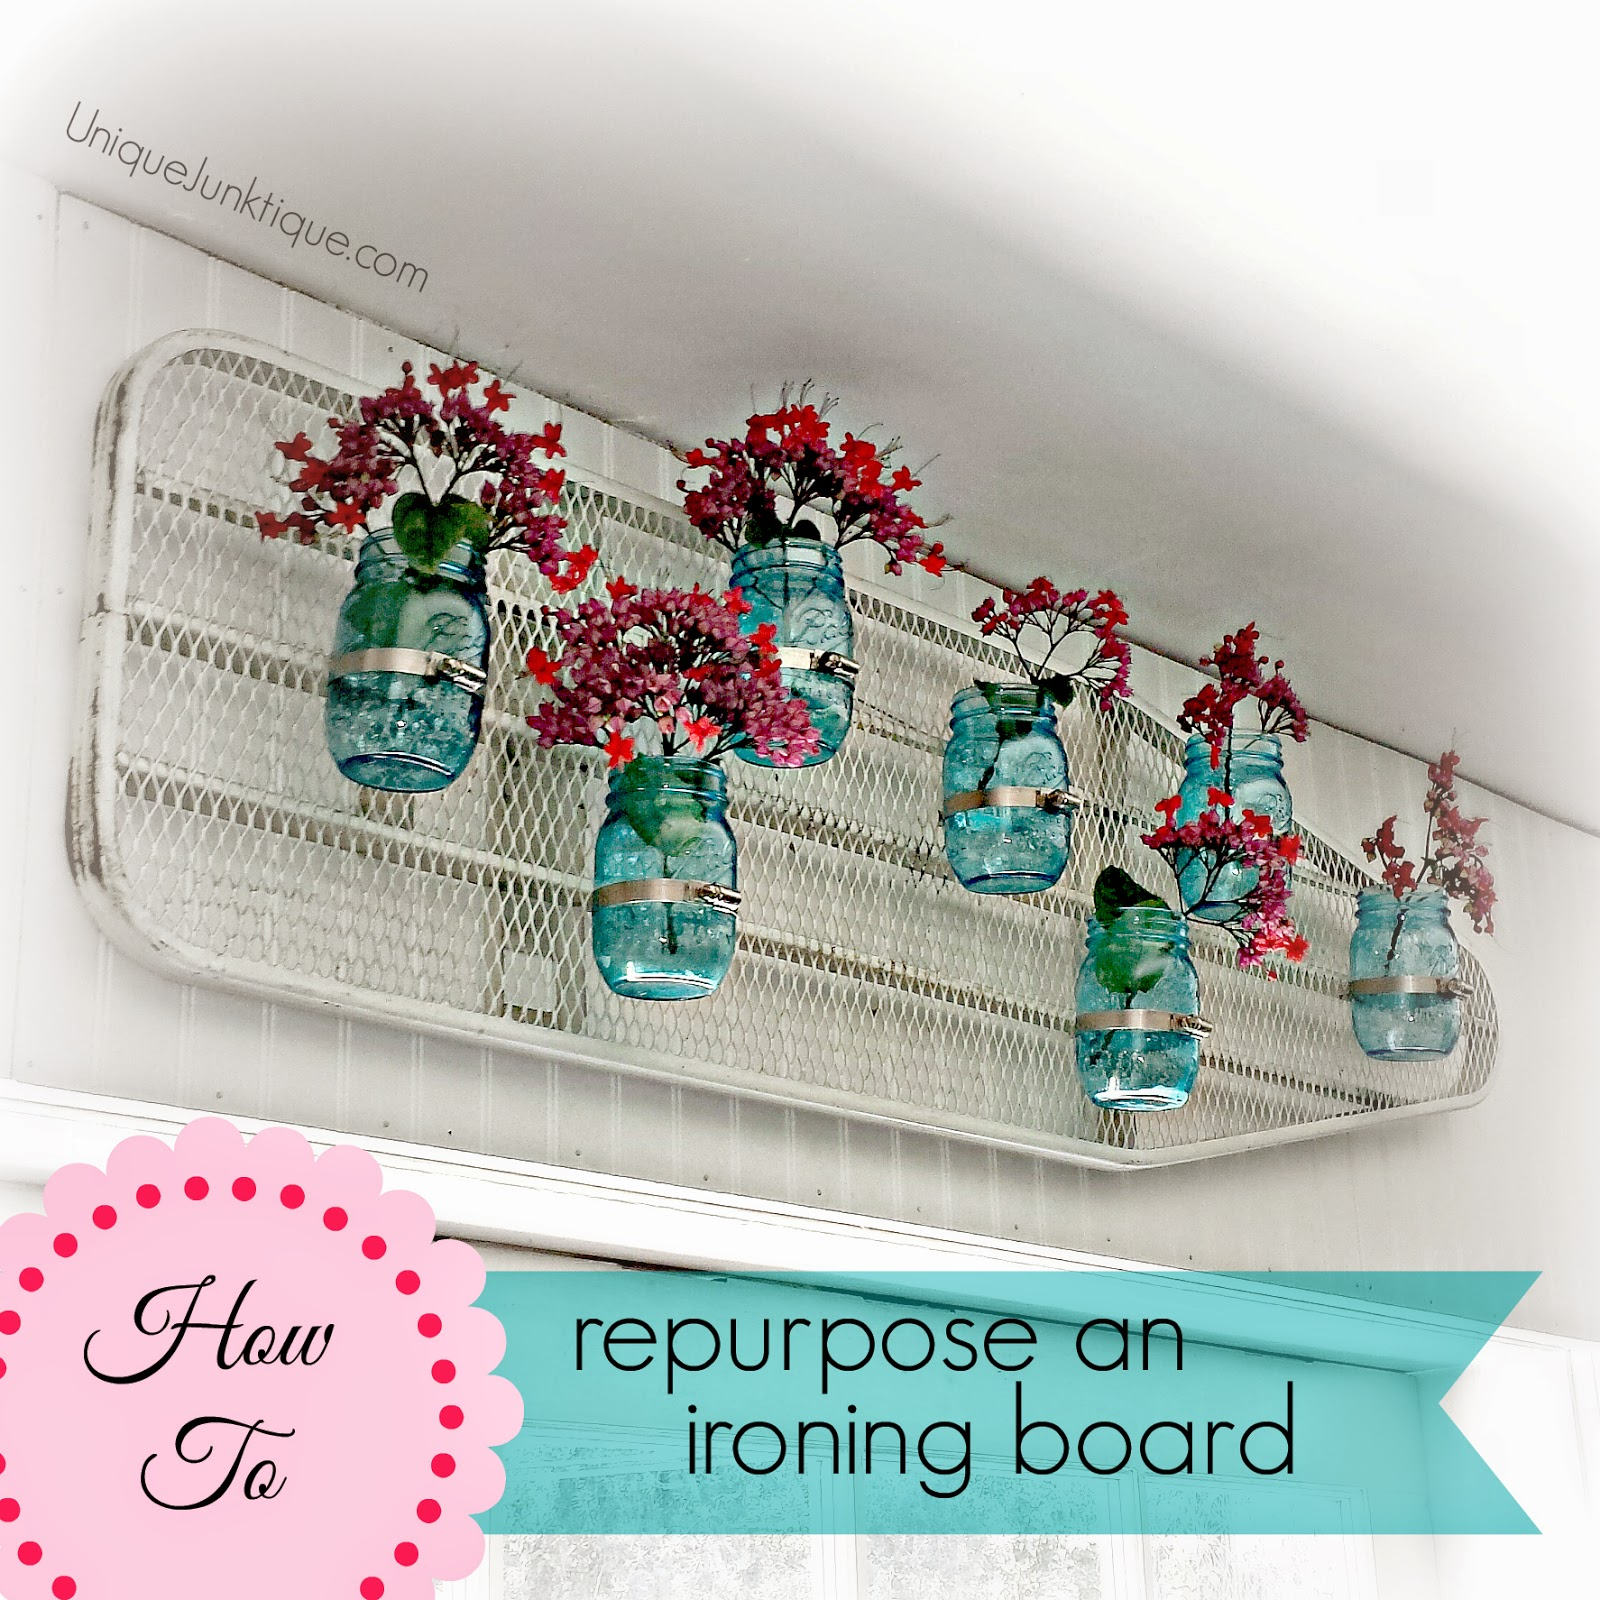 How to repurpose a vintage ironing board by Unique Junktique